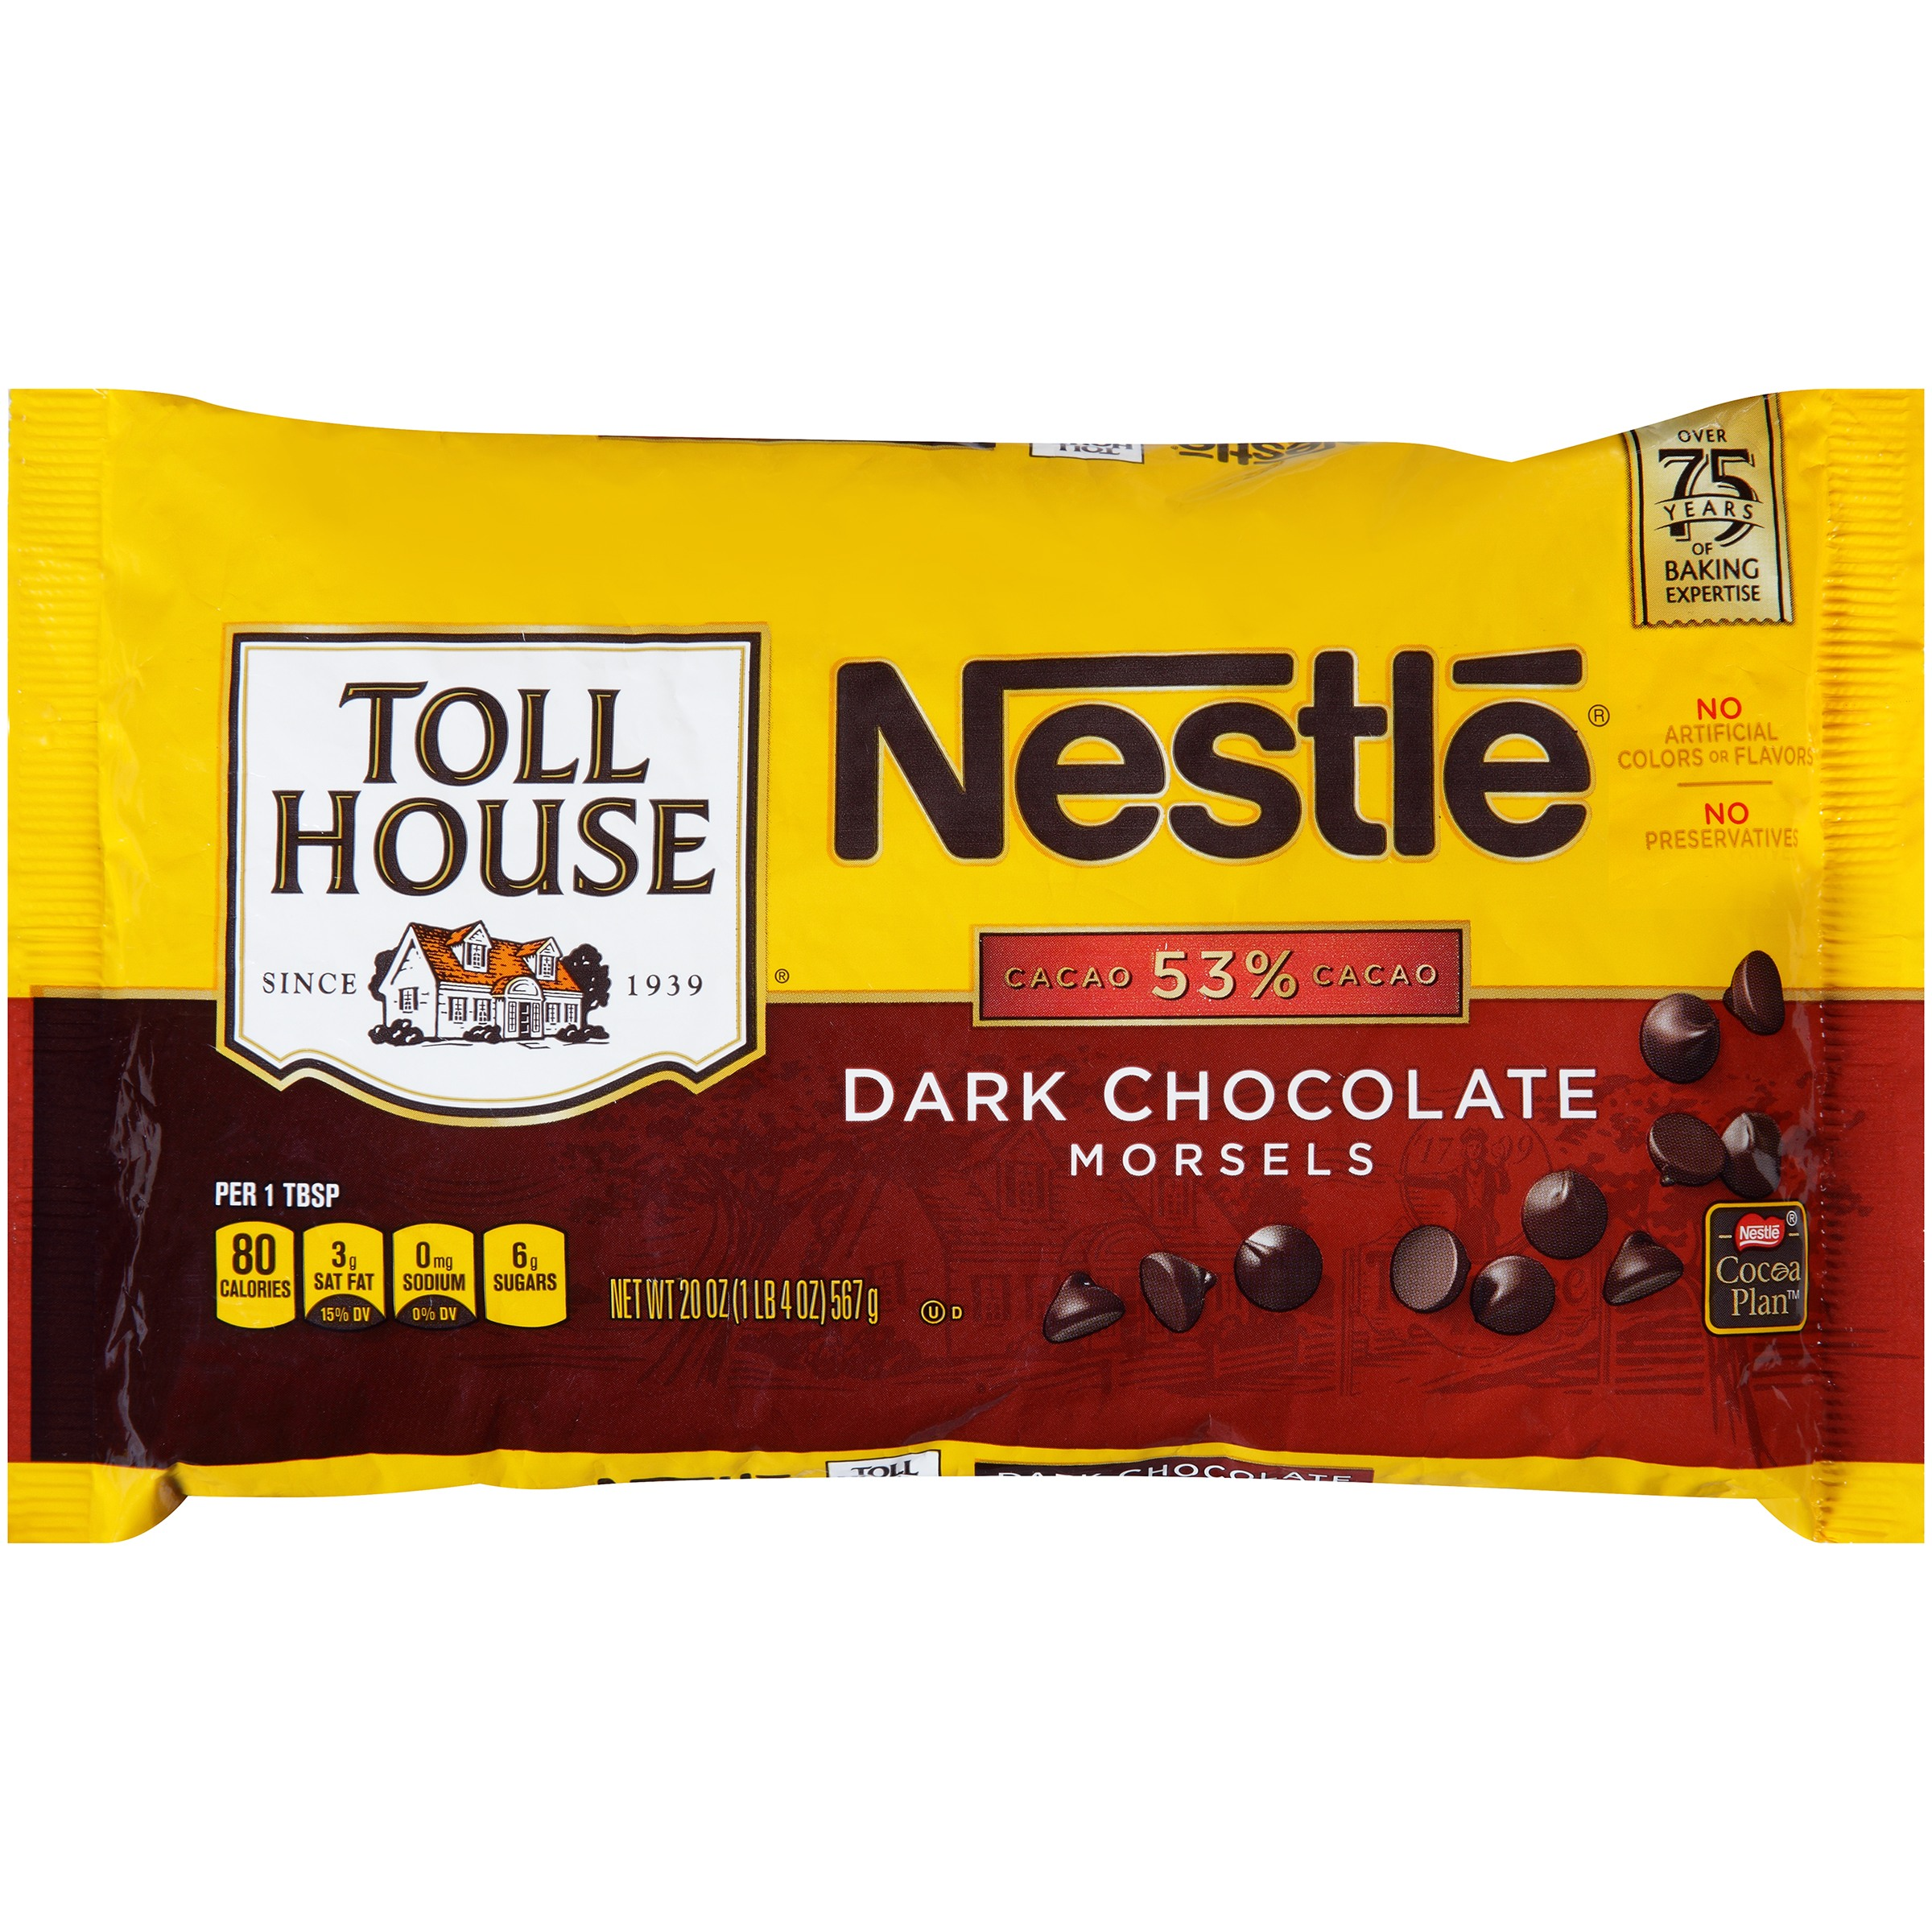 Nestle TOLL HOUSE Dark Chocolate Morsels 20 oz. Bag